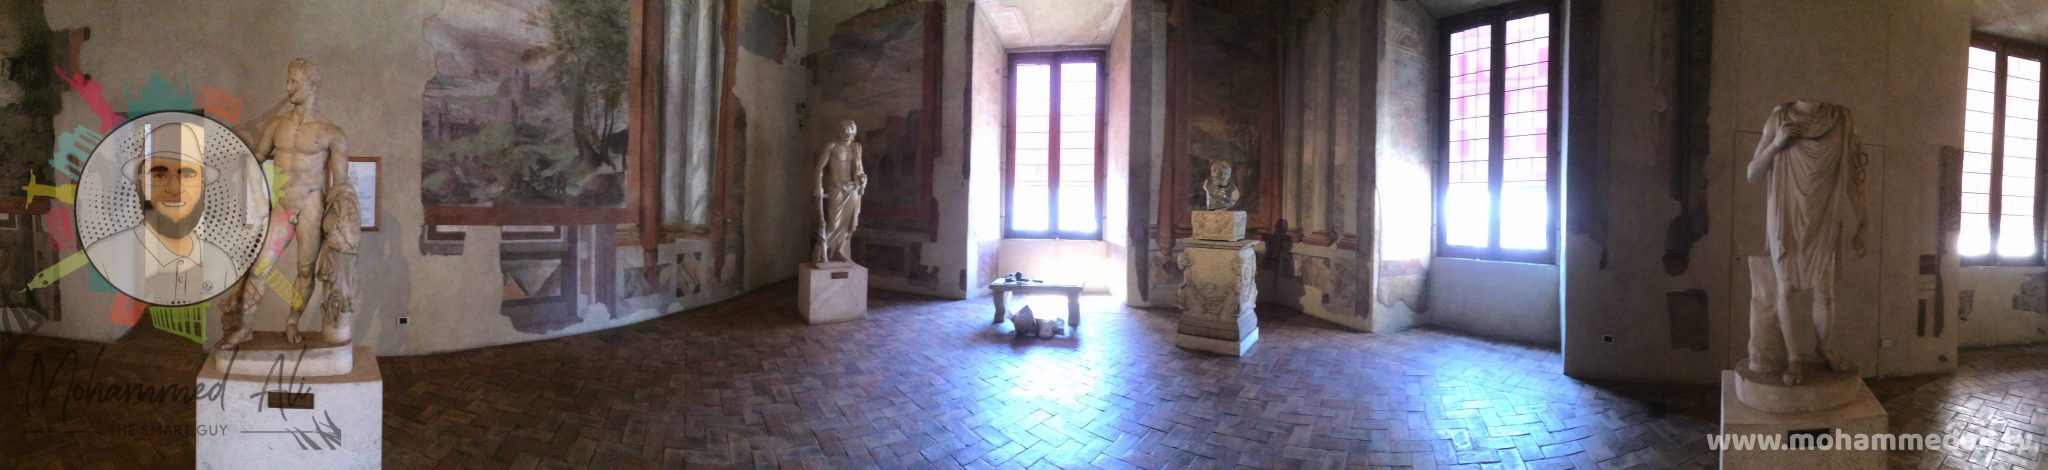 Panoramic view of the National Museum in Rome, Italy